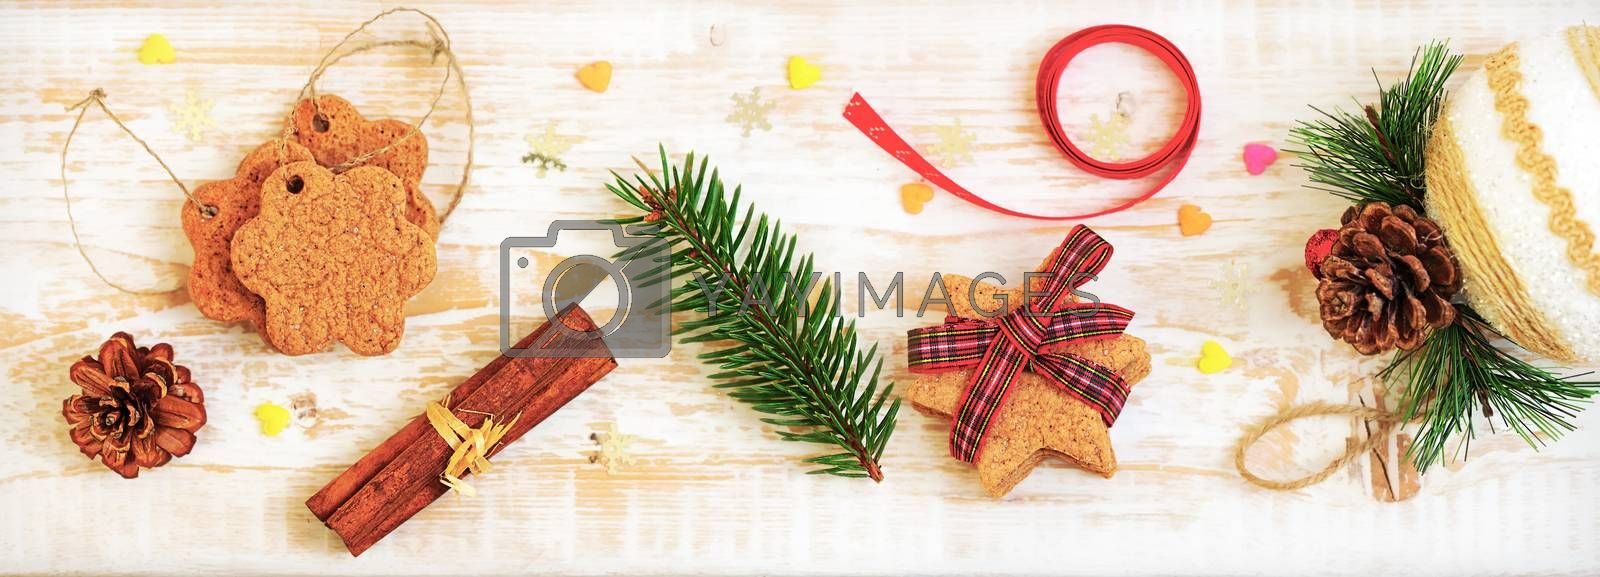 Christmas backgrounds. Christmas cookies. Holiday decorations, ornaments.